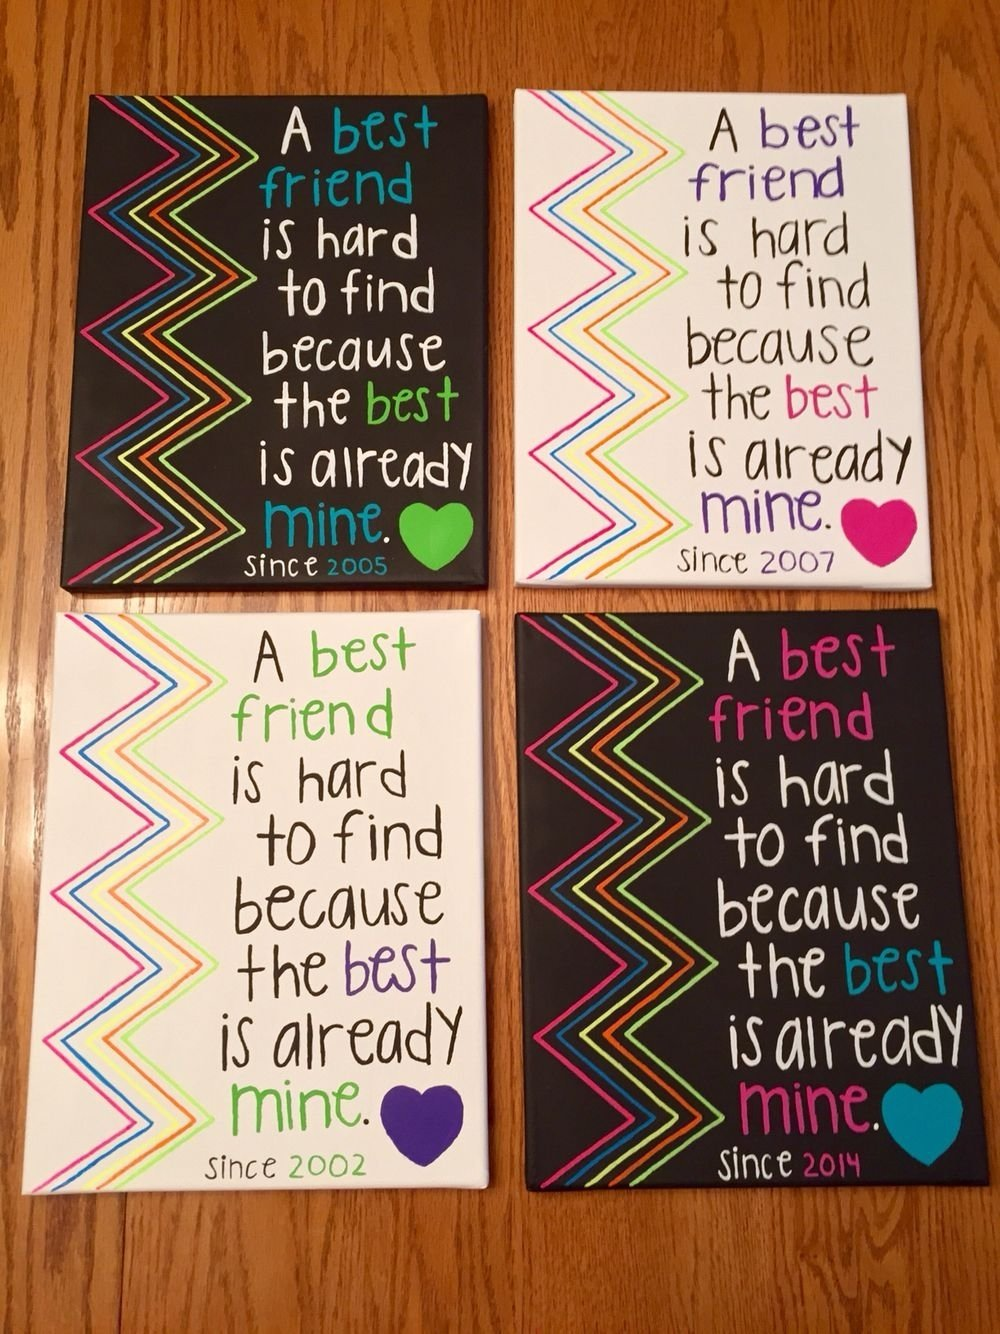 10 Nice Birthday Present Ideas For Best Friend presents for best friends diy pinterest gift bff and 4 2020